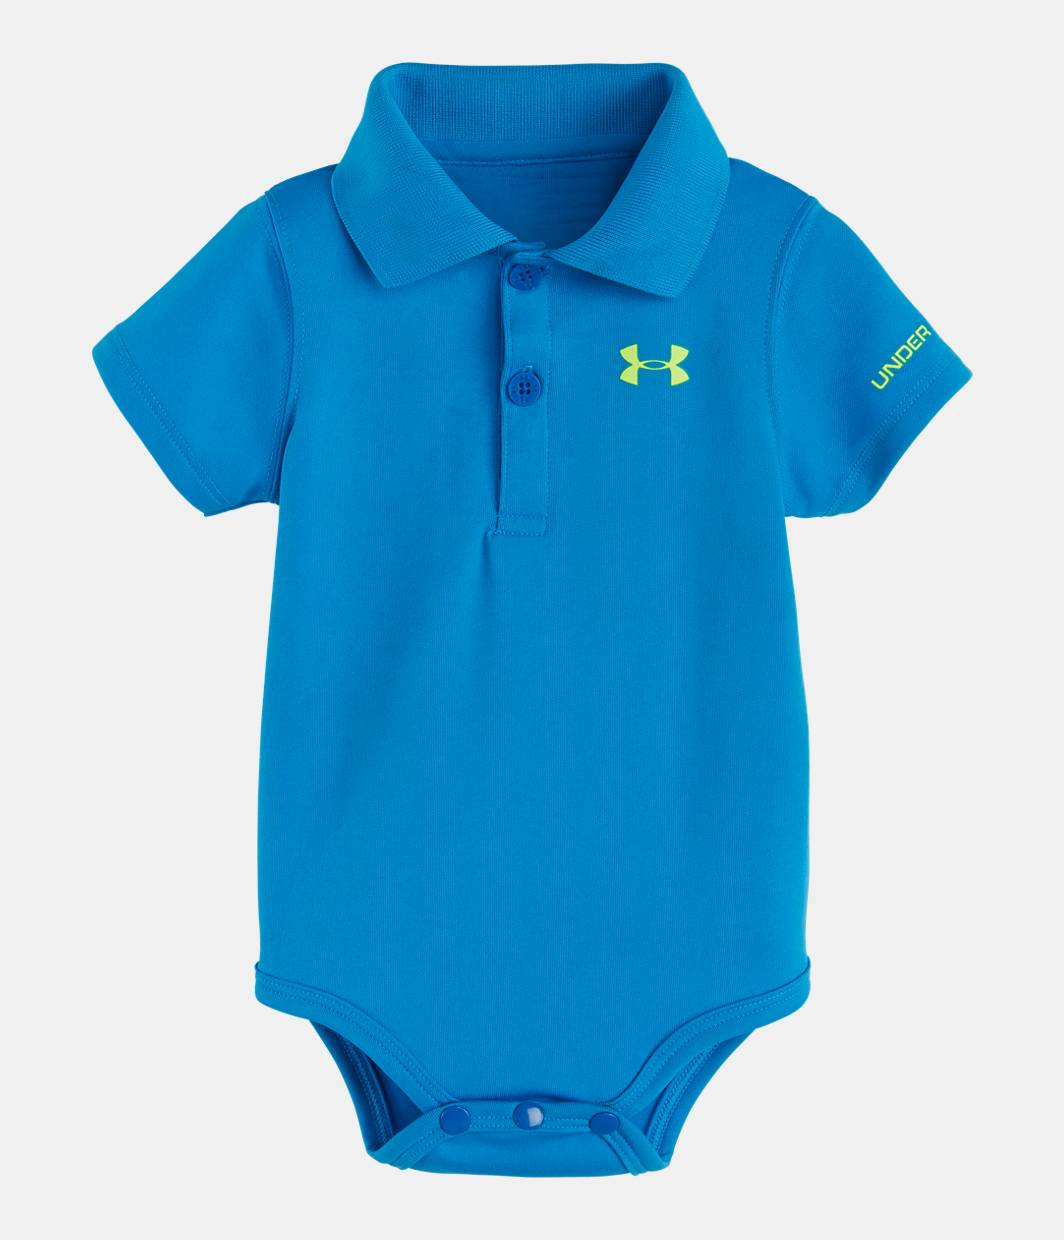 We have all kinds of clearance baby clothes, including boy clothes, girl clothes, baby girl dresses and baby boy dress clothes. Find top brands like Carter's®, OshKosh B'gosh® and Okie Dokie®. Shopping our clearance baby clothes is a great way get all the clothes your need for your little bundle of joy.